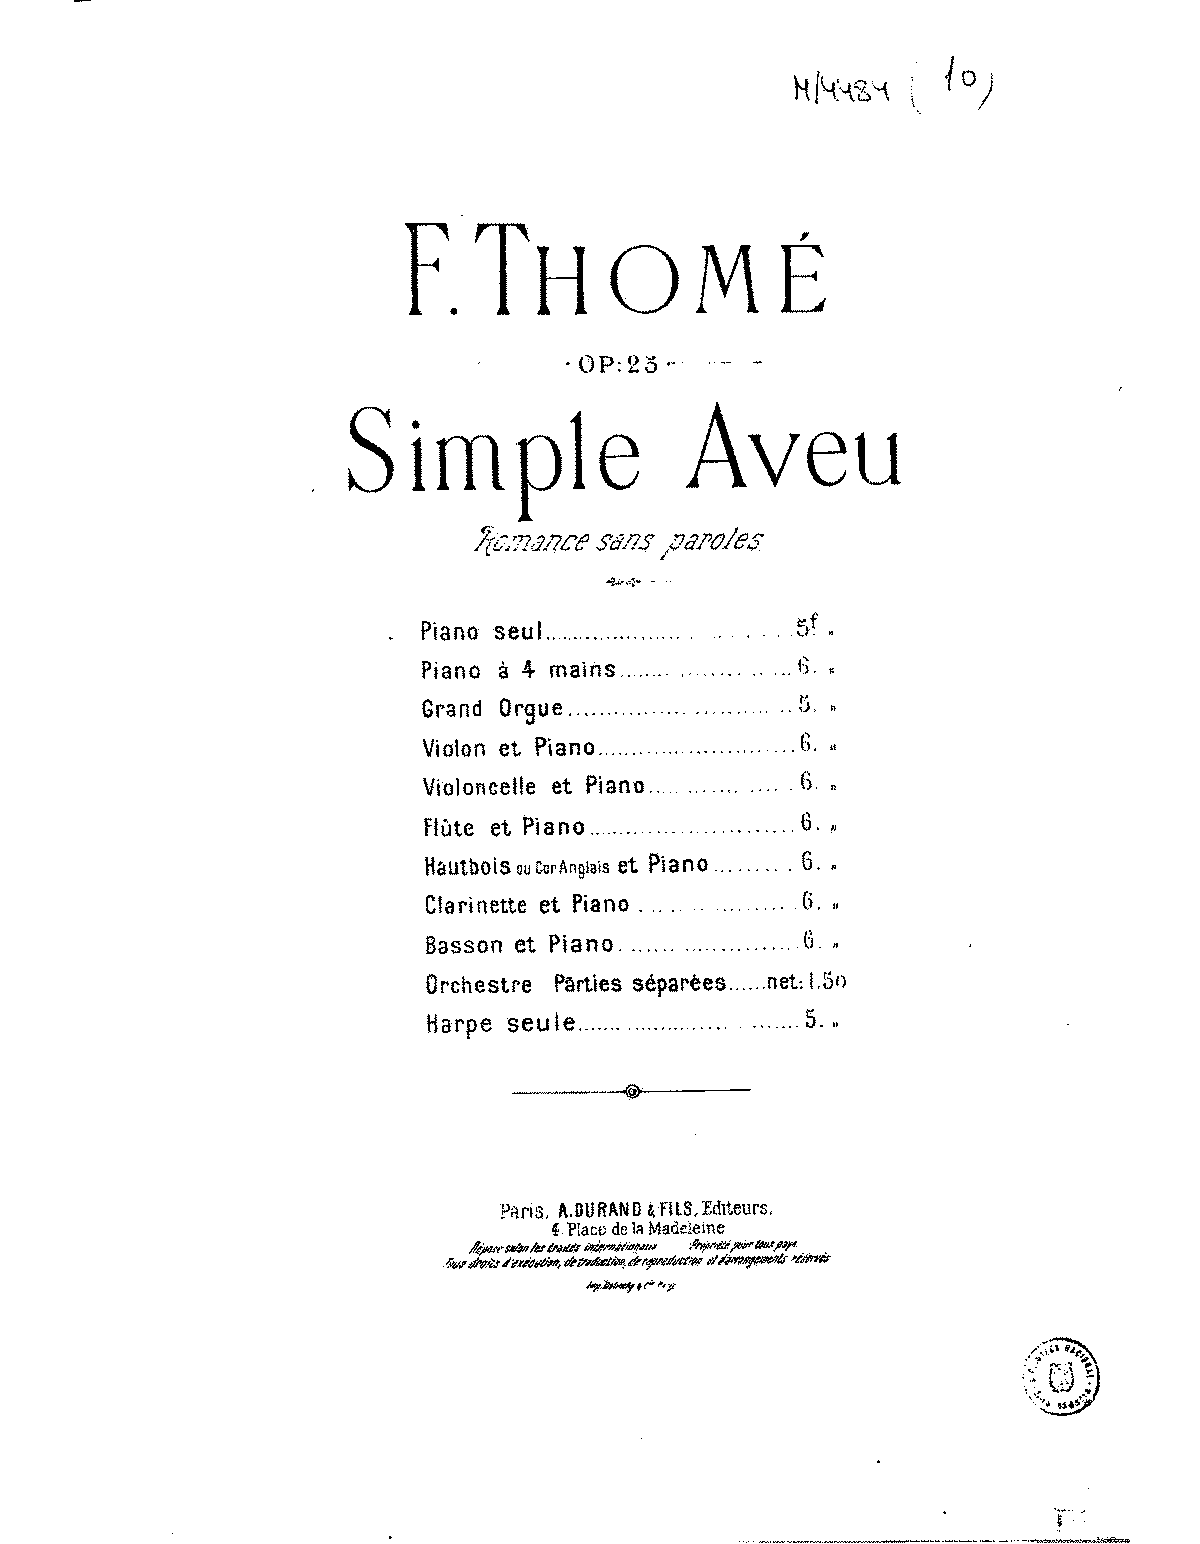 PMLP48371-FThome Simple aveu, Op.25 Durand.pdf